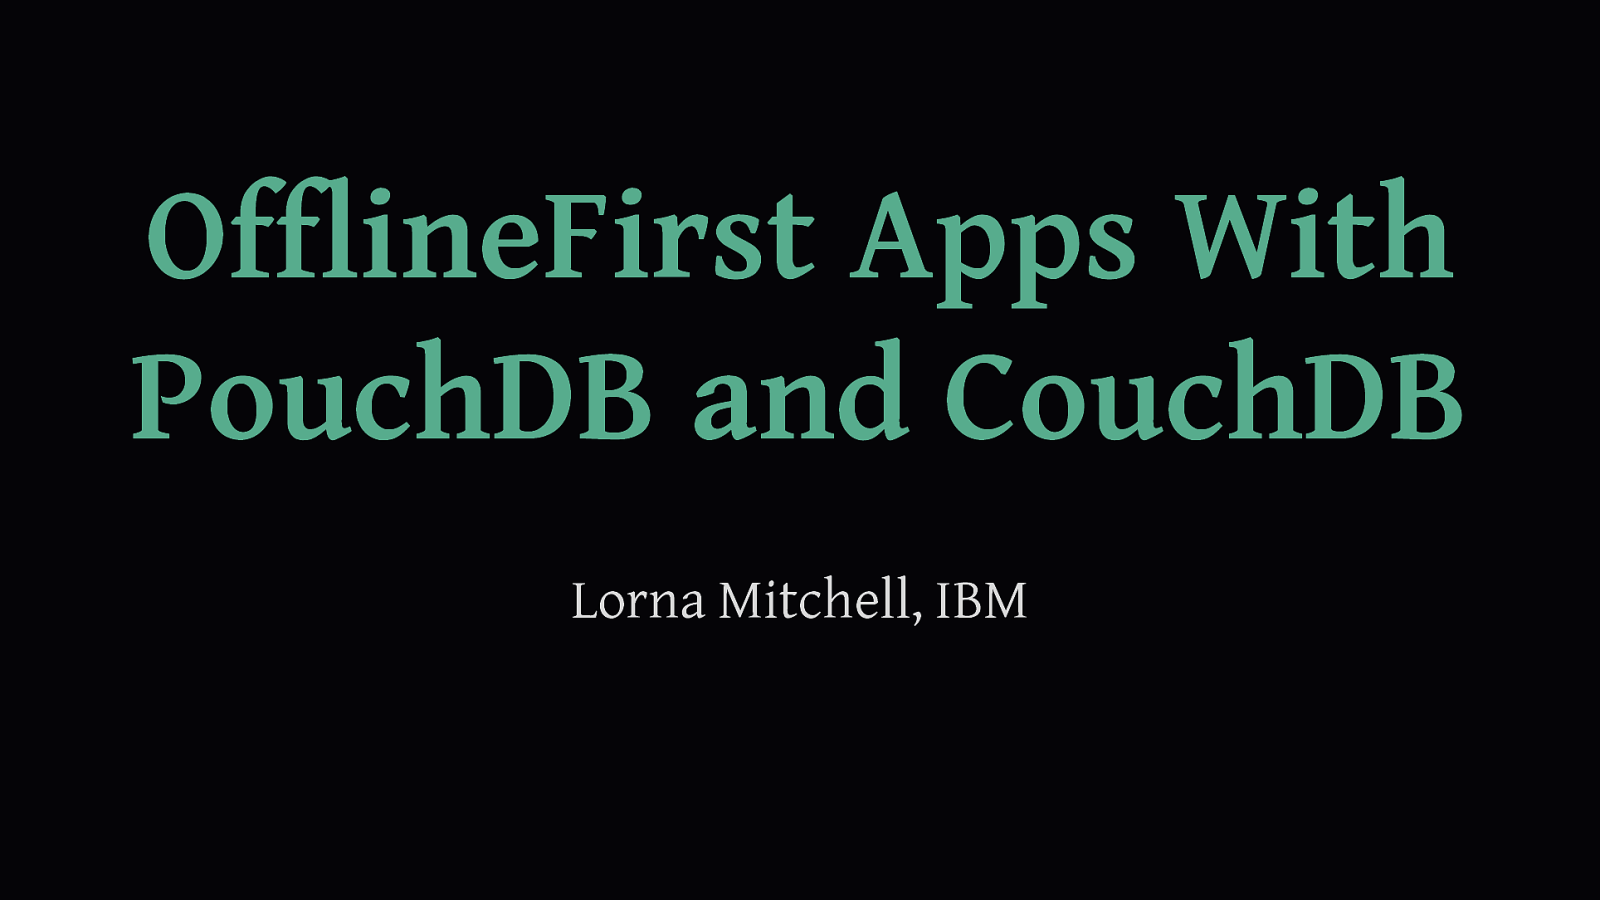 Offline First Apps with PouchDB and CouchDB